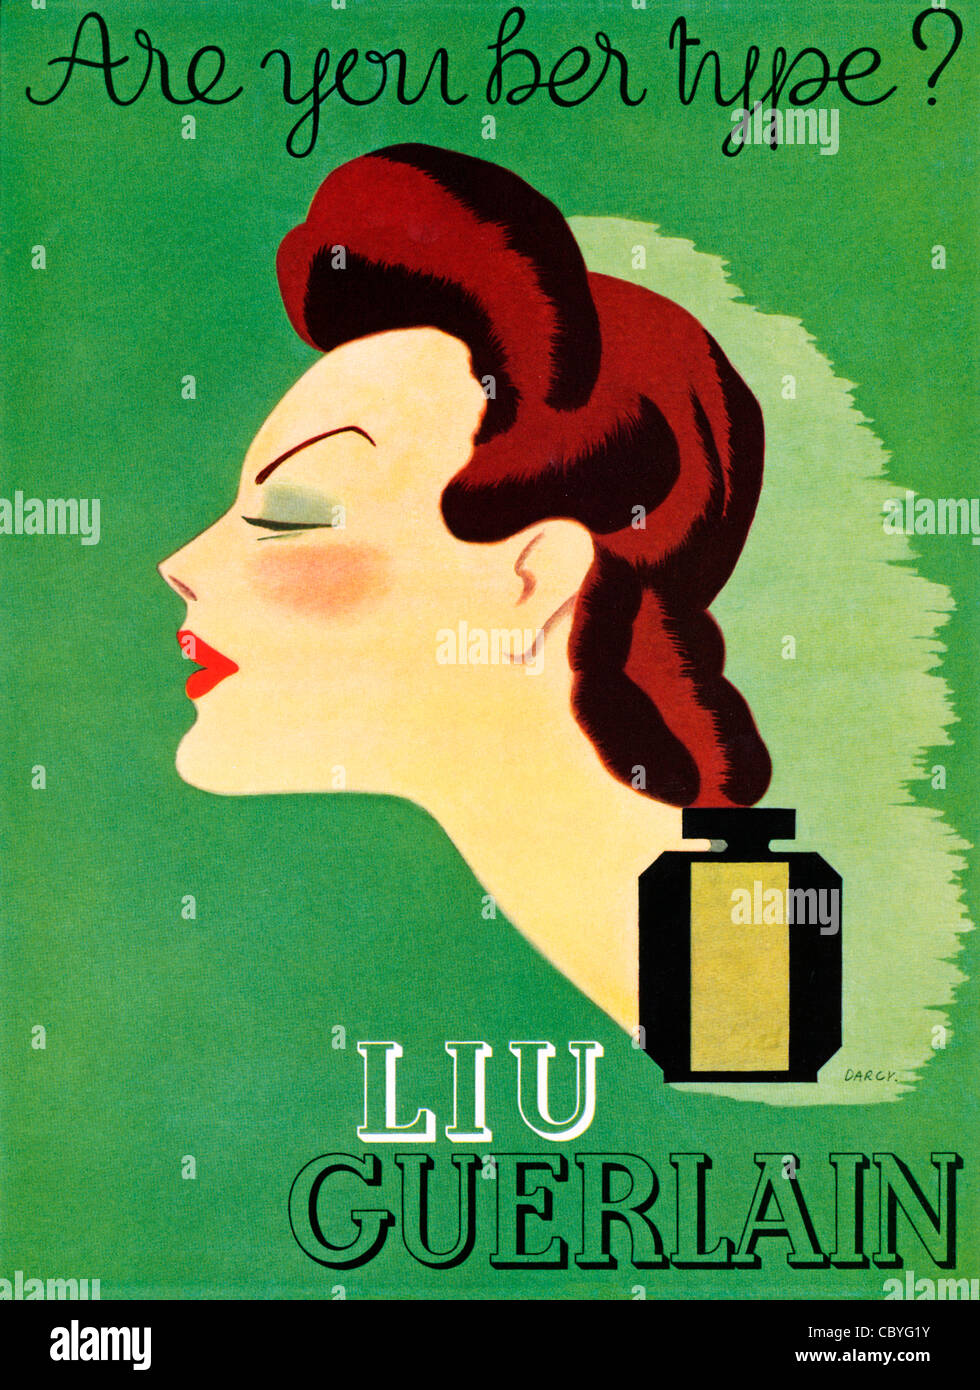 Liu Guerlain, 1937 advert in an English magazine for the classic French perfume, Are You Her Type - Stock Image